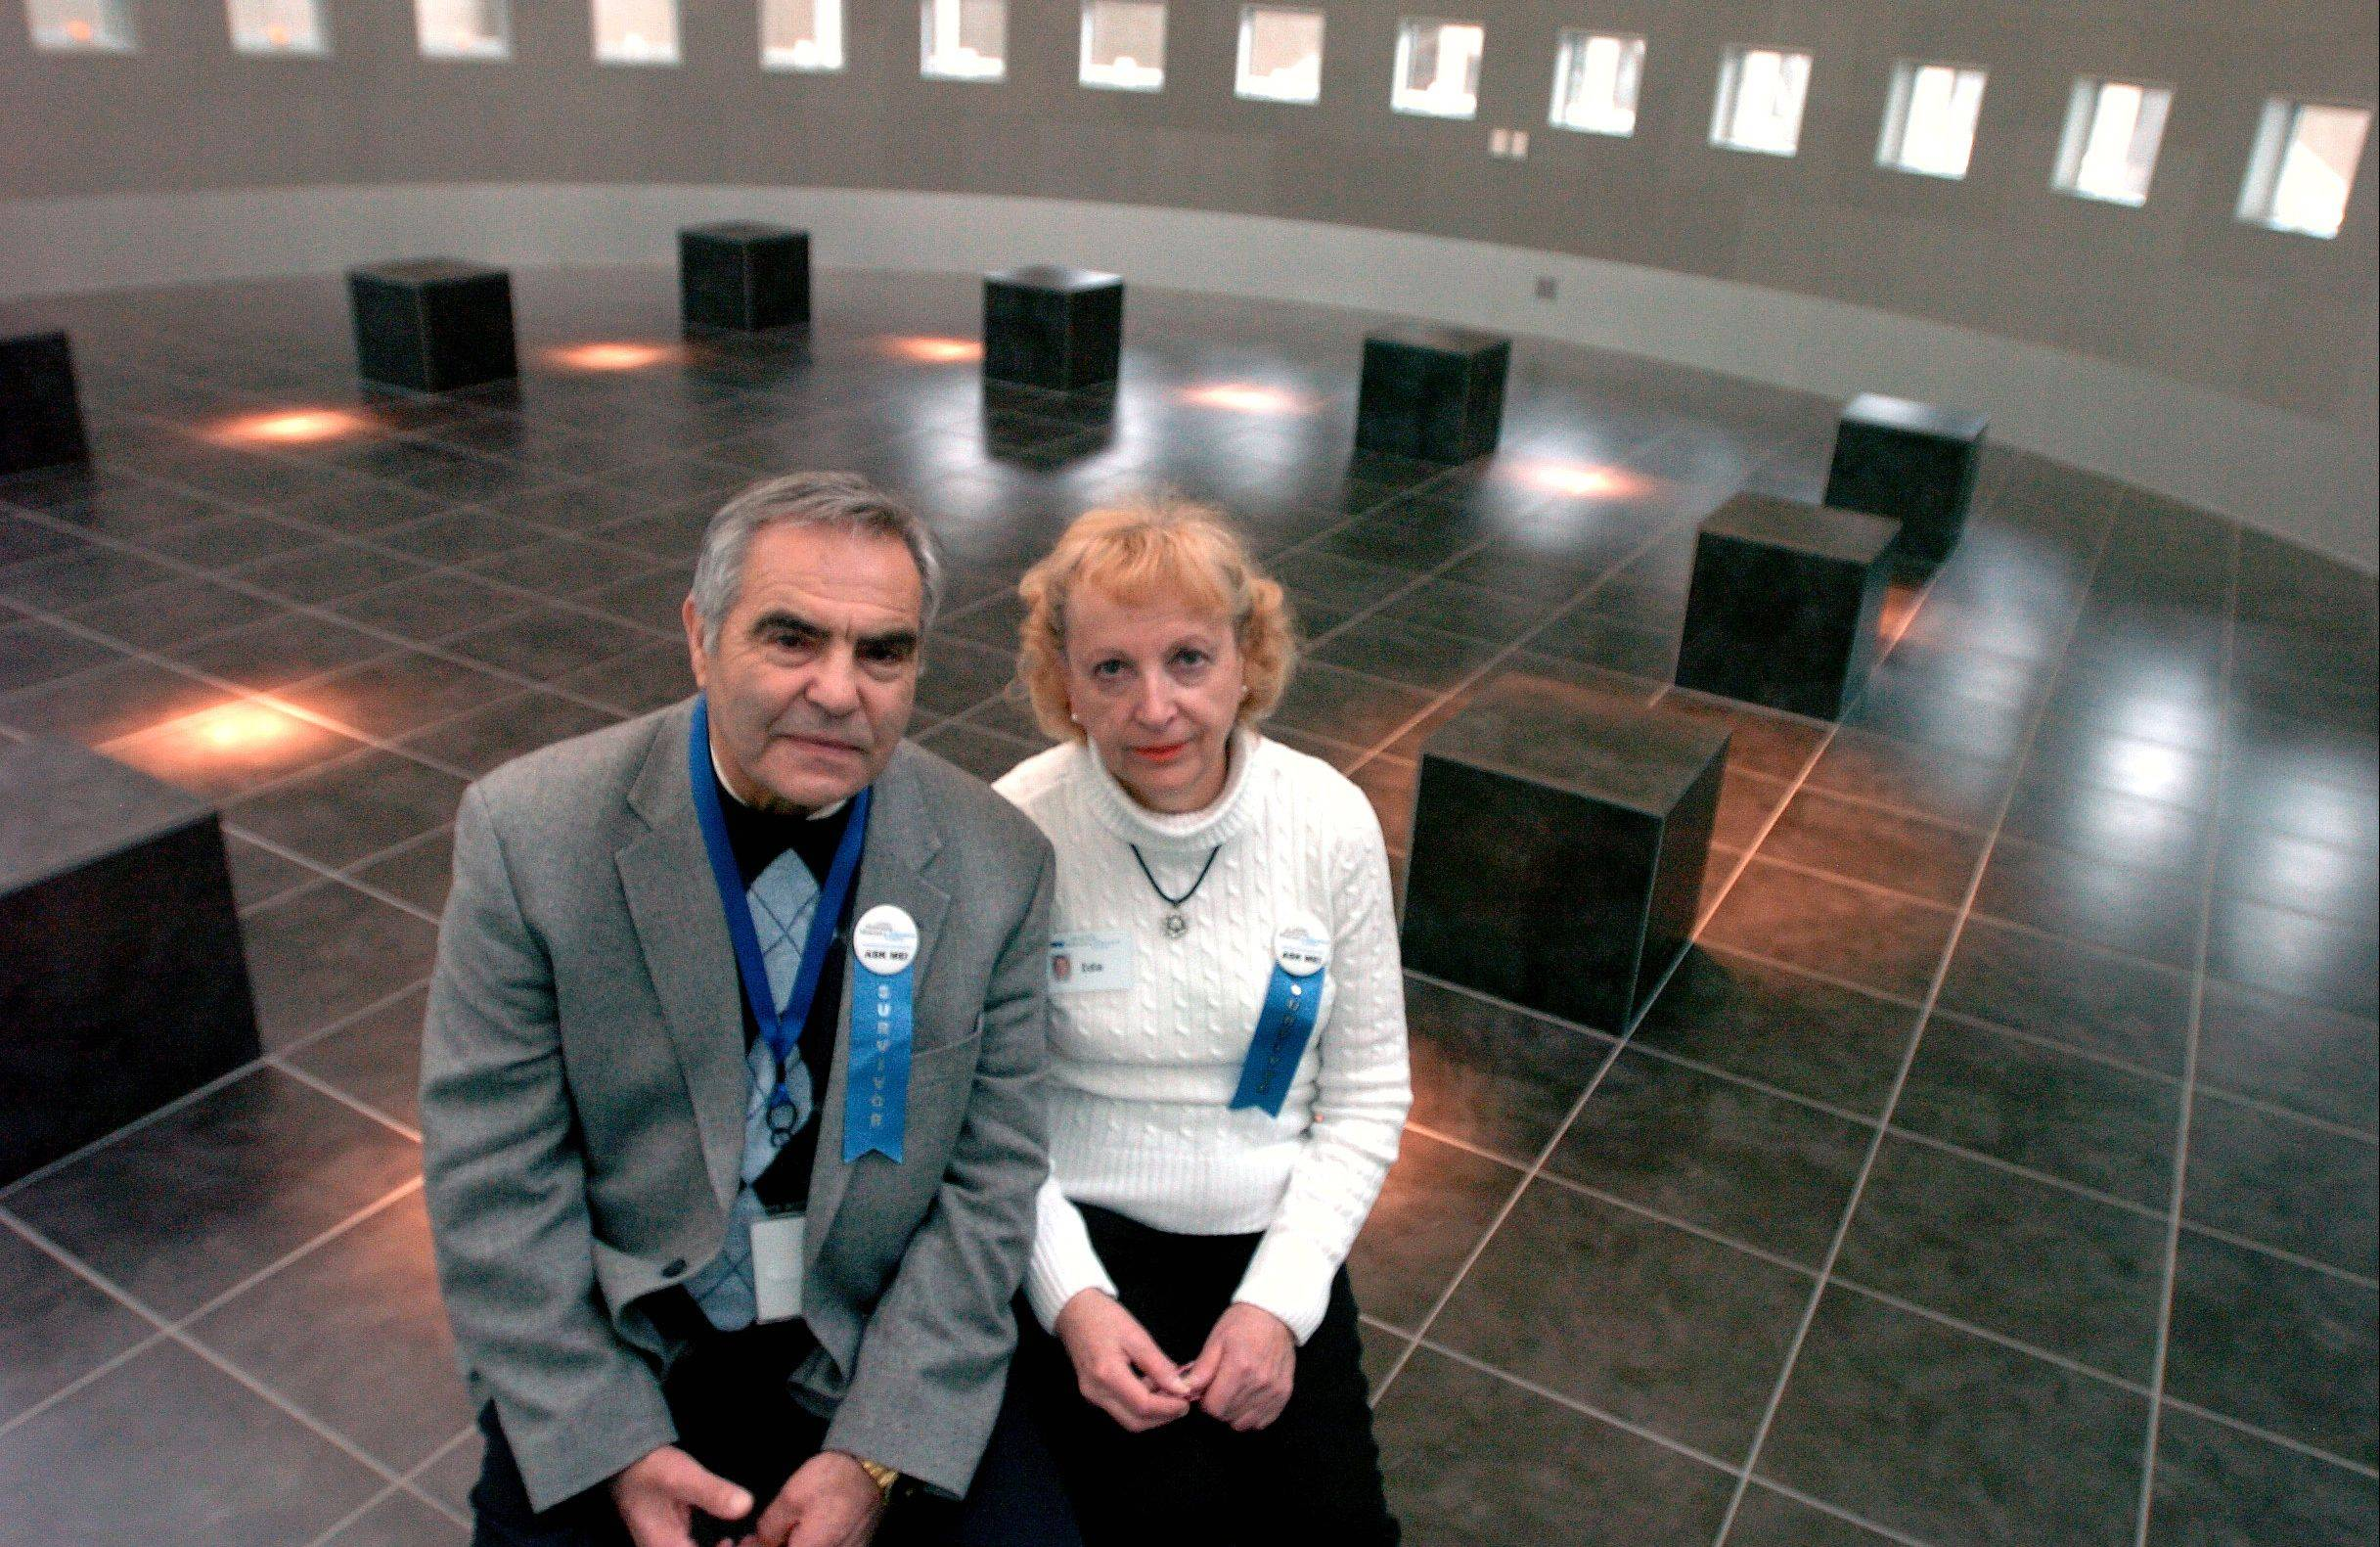 Holocaust survivors Adam Paluch of Mundelein and his twin sister Ida Kersz of Skokie sit in the Pritzker Hall of Reflection at the Illinois Holocaust Museum & Education Center. The twins were separated during the Holocaust, and reunited in 1995.